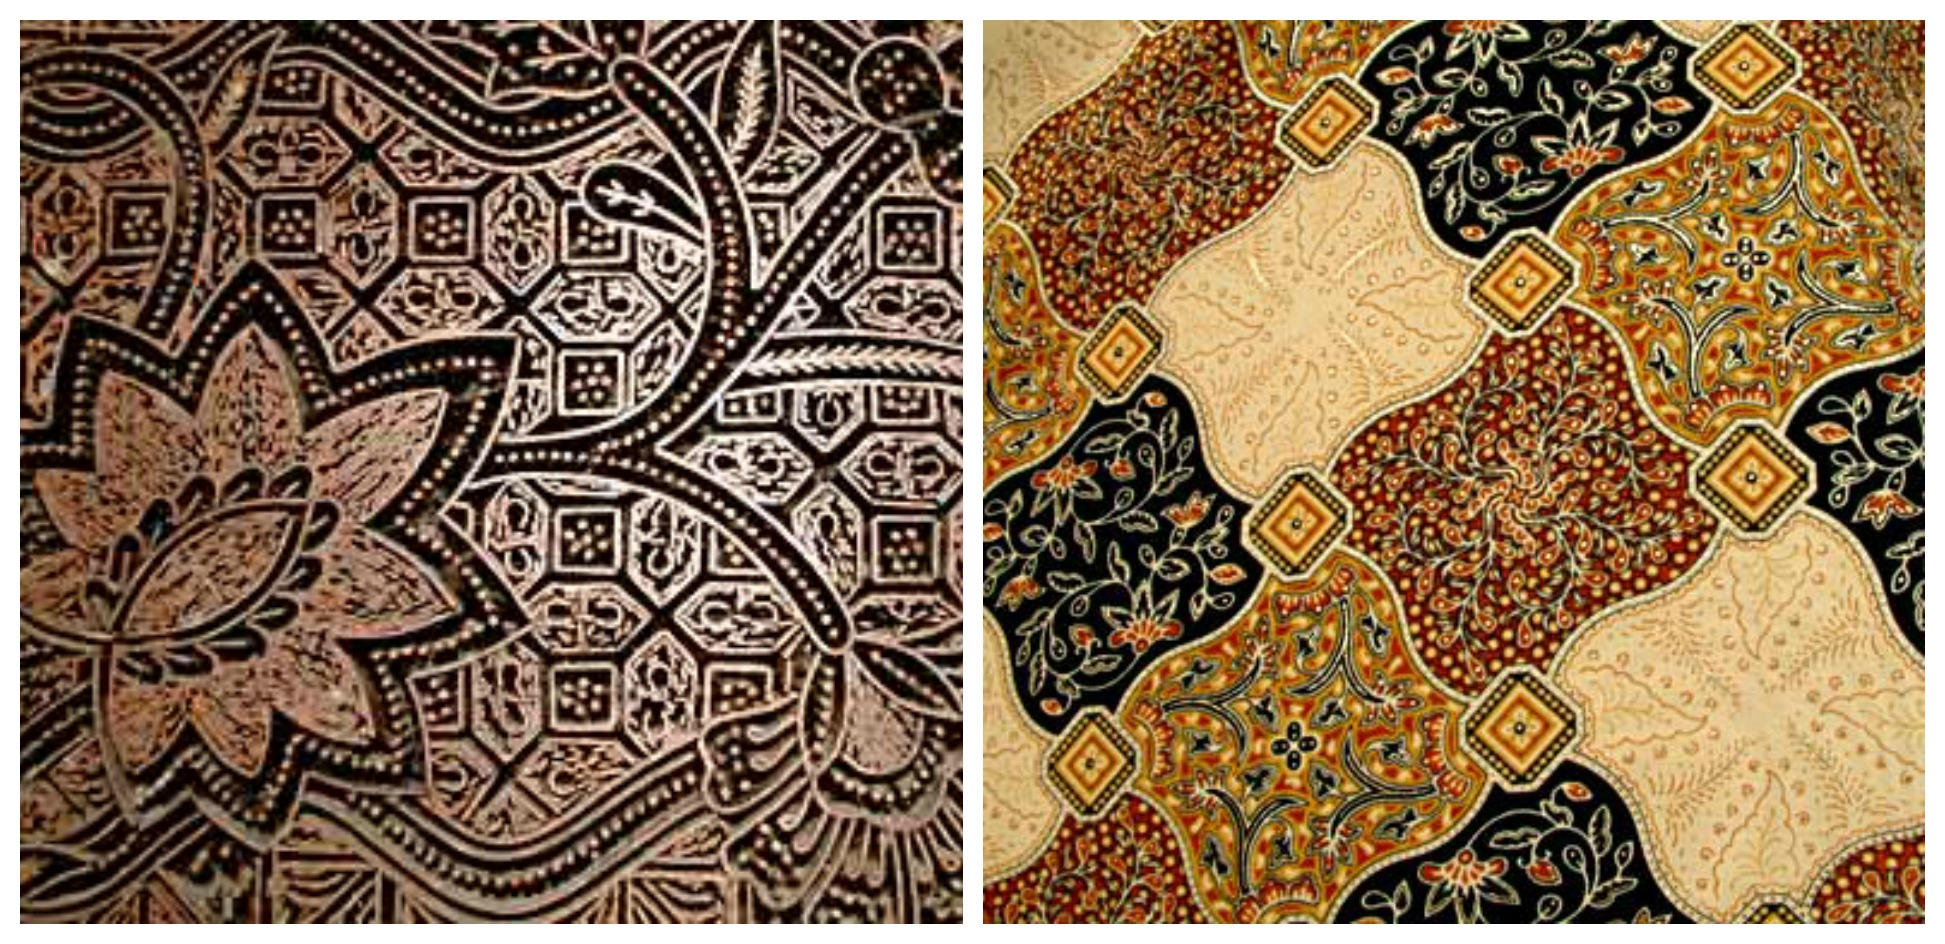 Indonesian Batik Image Source